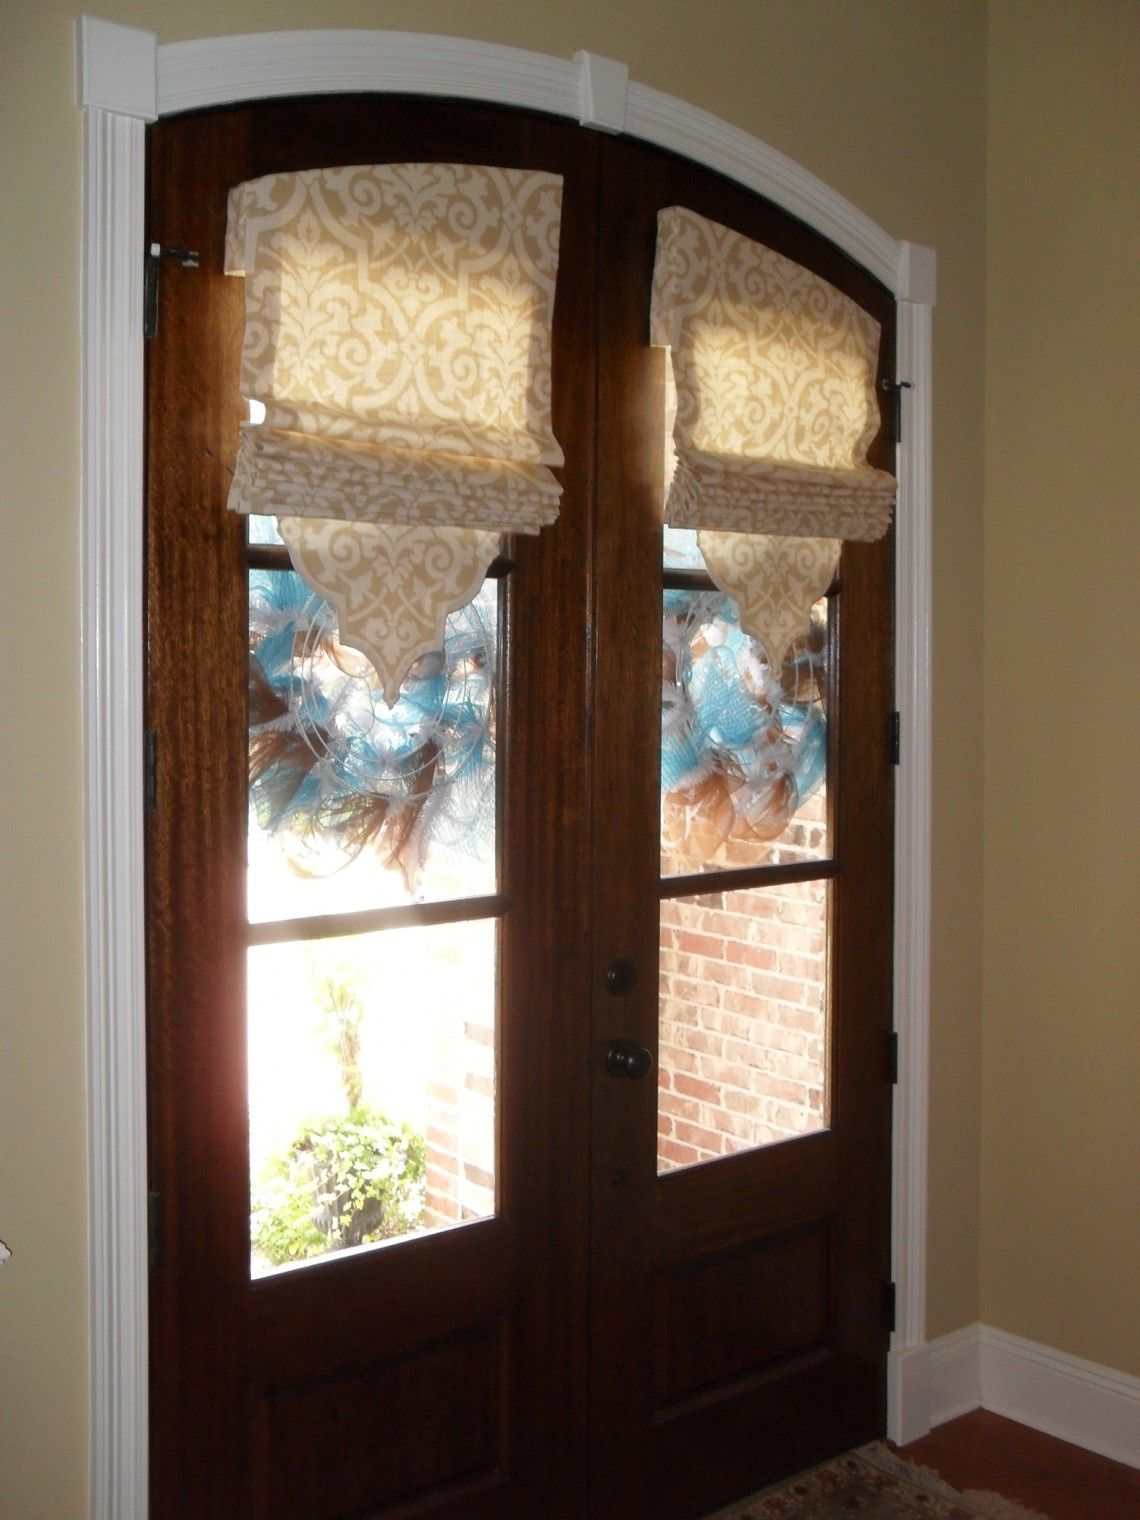 Glass front door window treatments - Accessory Door With Cordless Roman Shades Design For Front Door Window Blinds